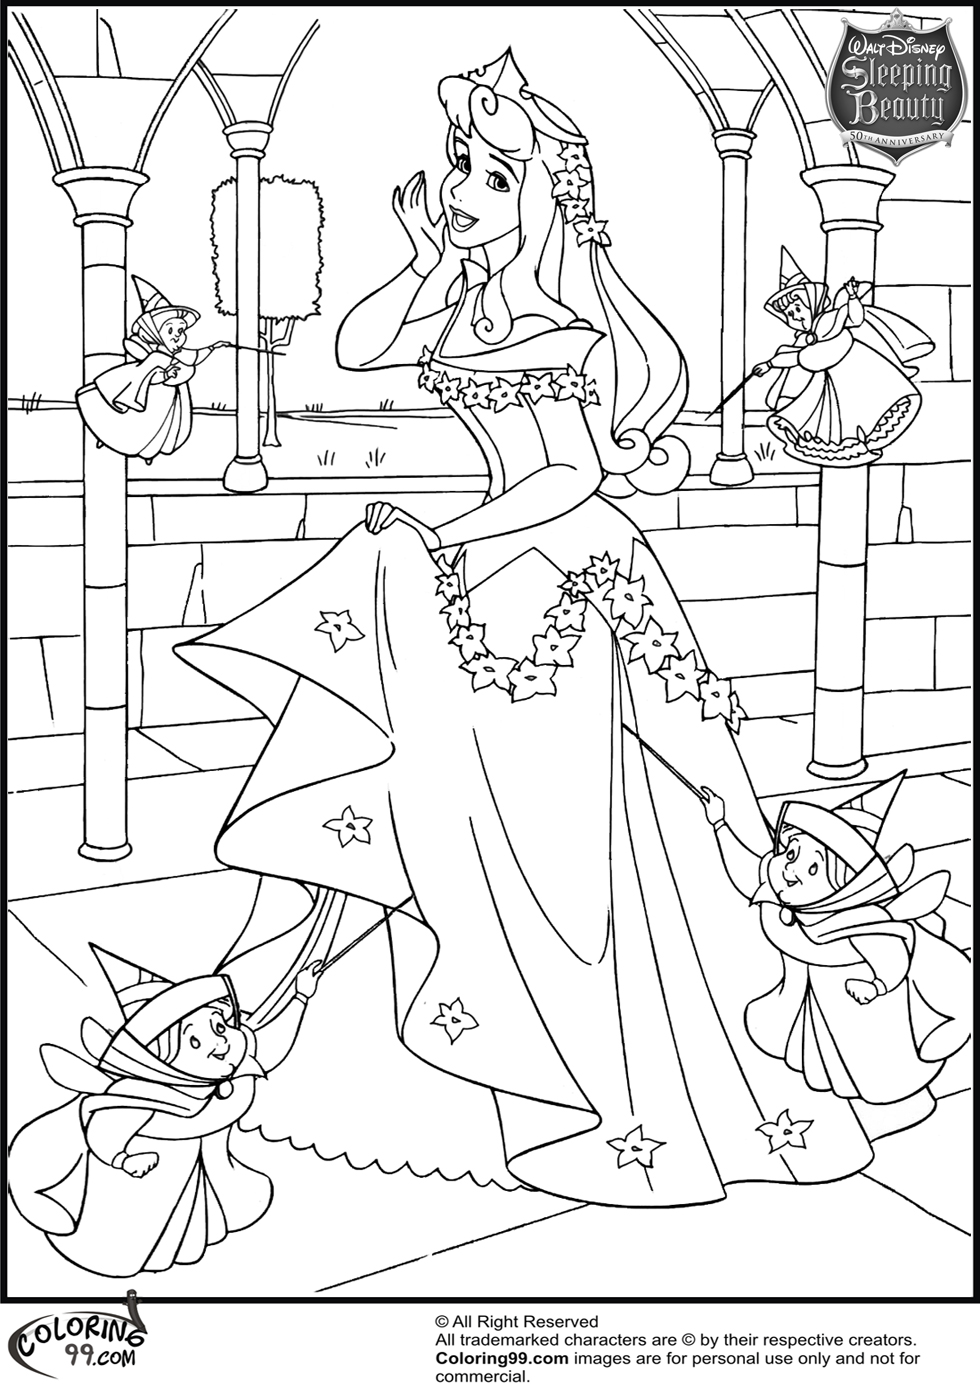 Disney Princess Aurora Coloring Pages | Team colors | free printable princess aurora coloring pages